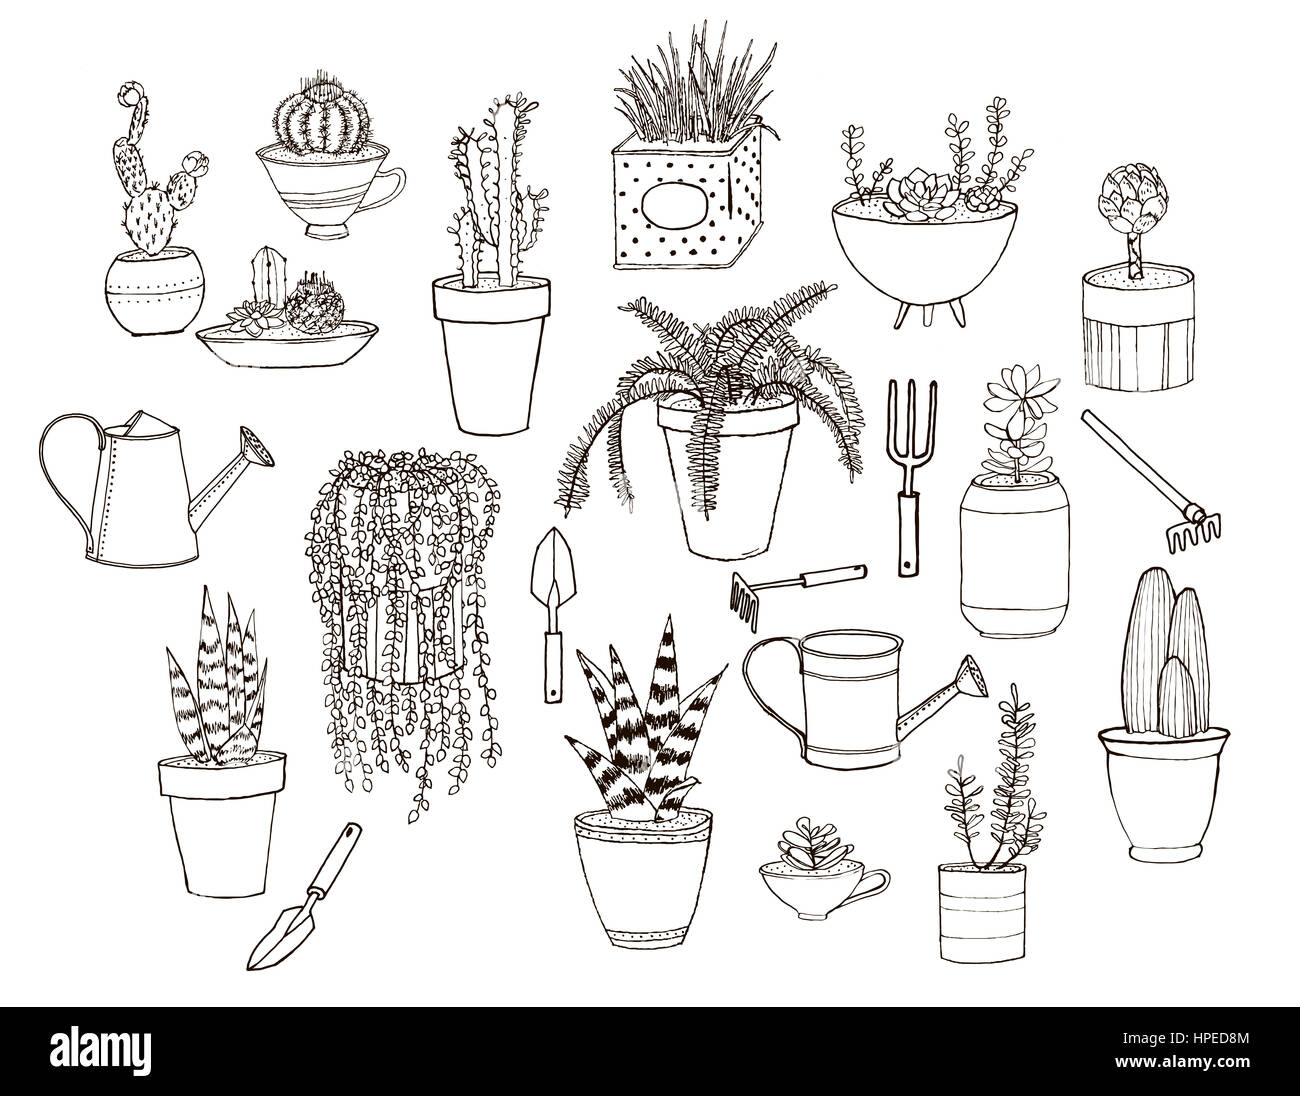 Potted Plants Cut Out Stock Images & Pictures - Alamy